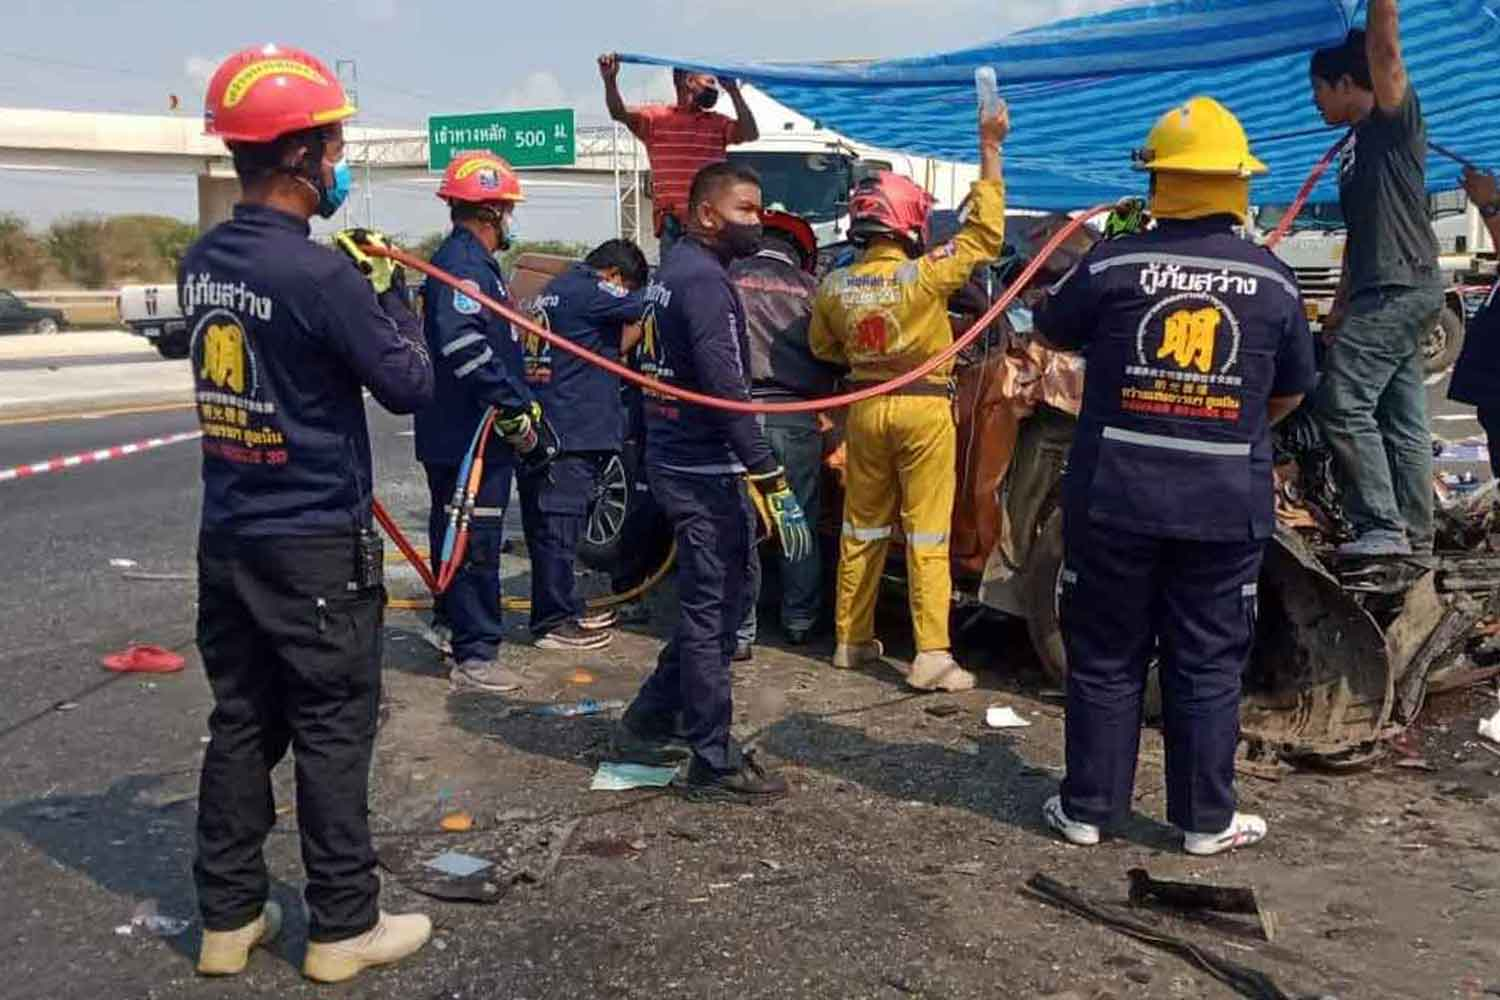 Rescuers at work on the Bangkok-bound side of Mitrapap highway in Sung Noen district, Nakhon Ratchasima, after two pickups collided on Monday, killing two people and seriously injuring four. (Photo: Prasit Tangprasert)